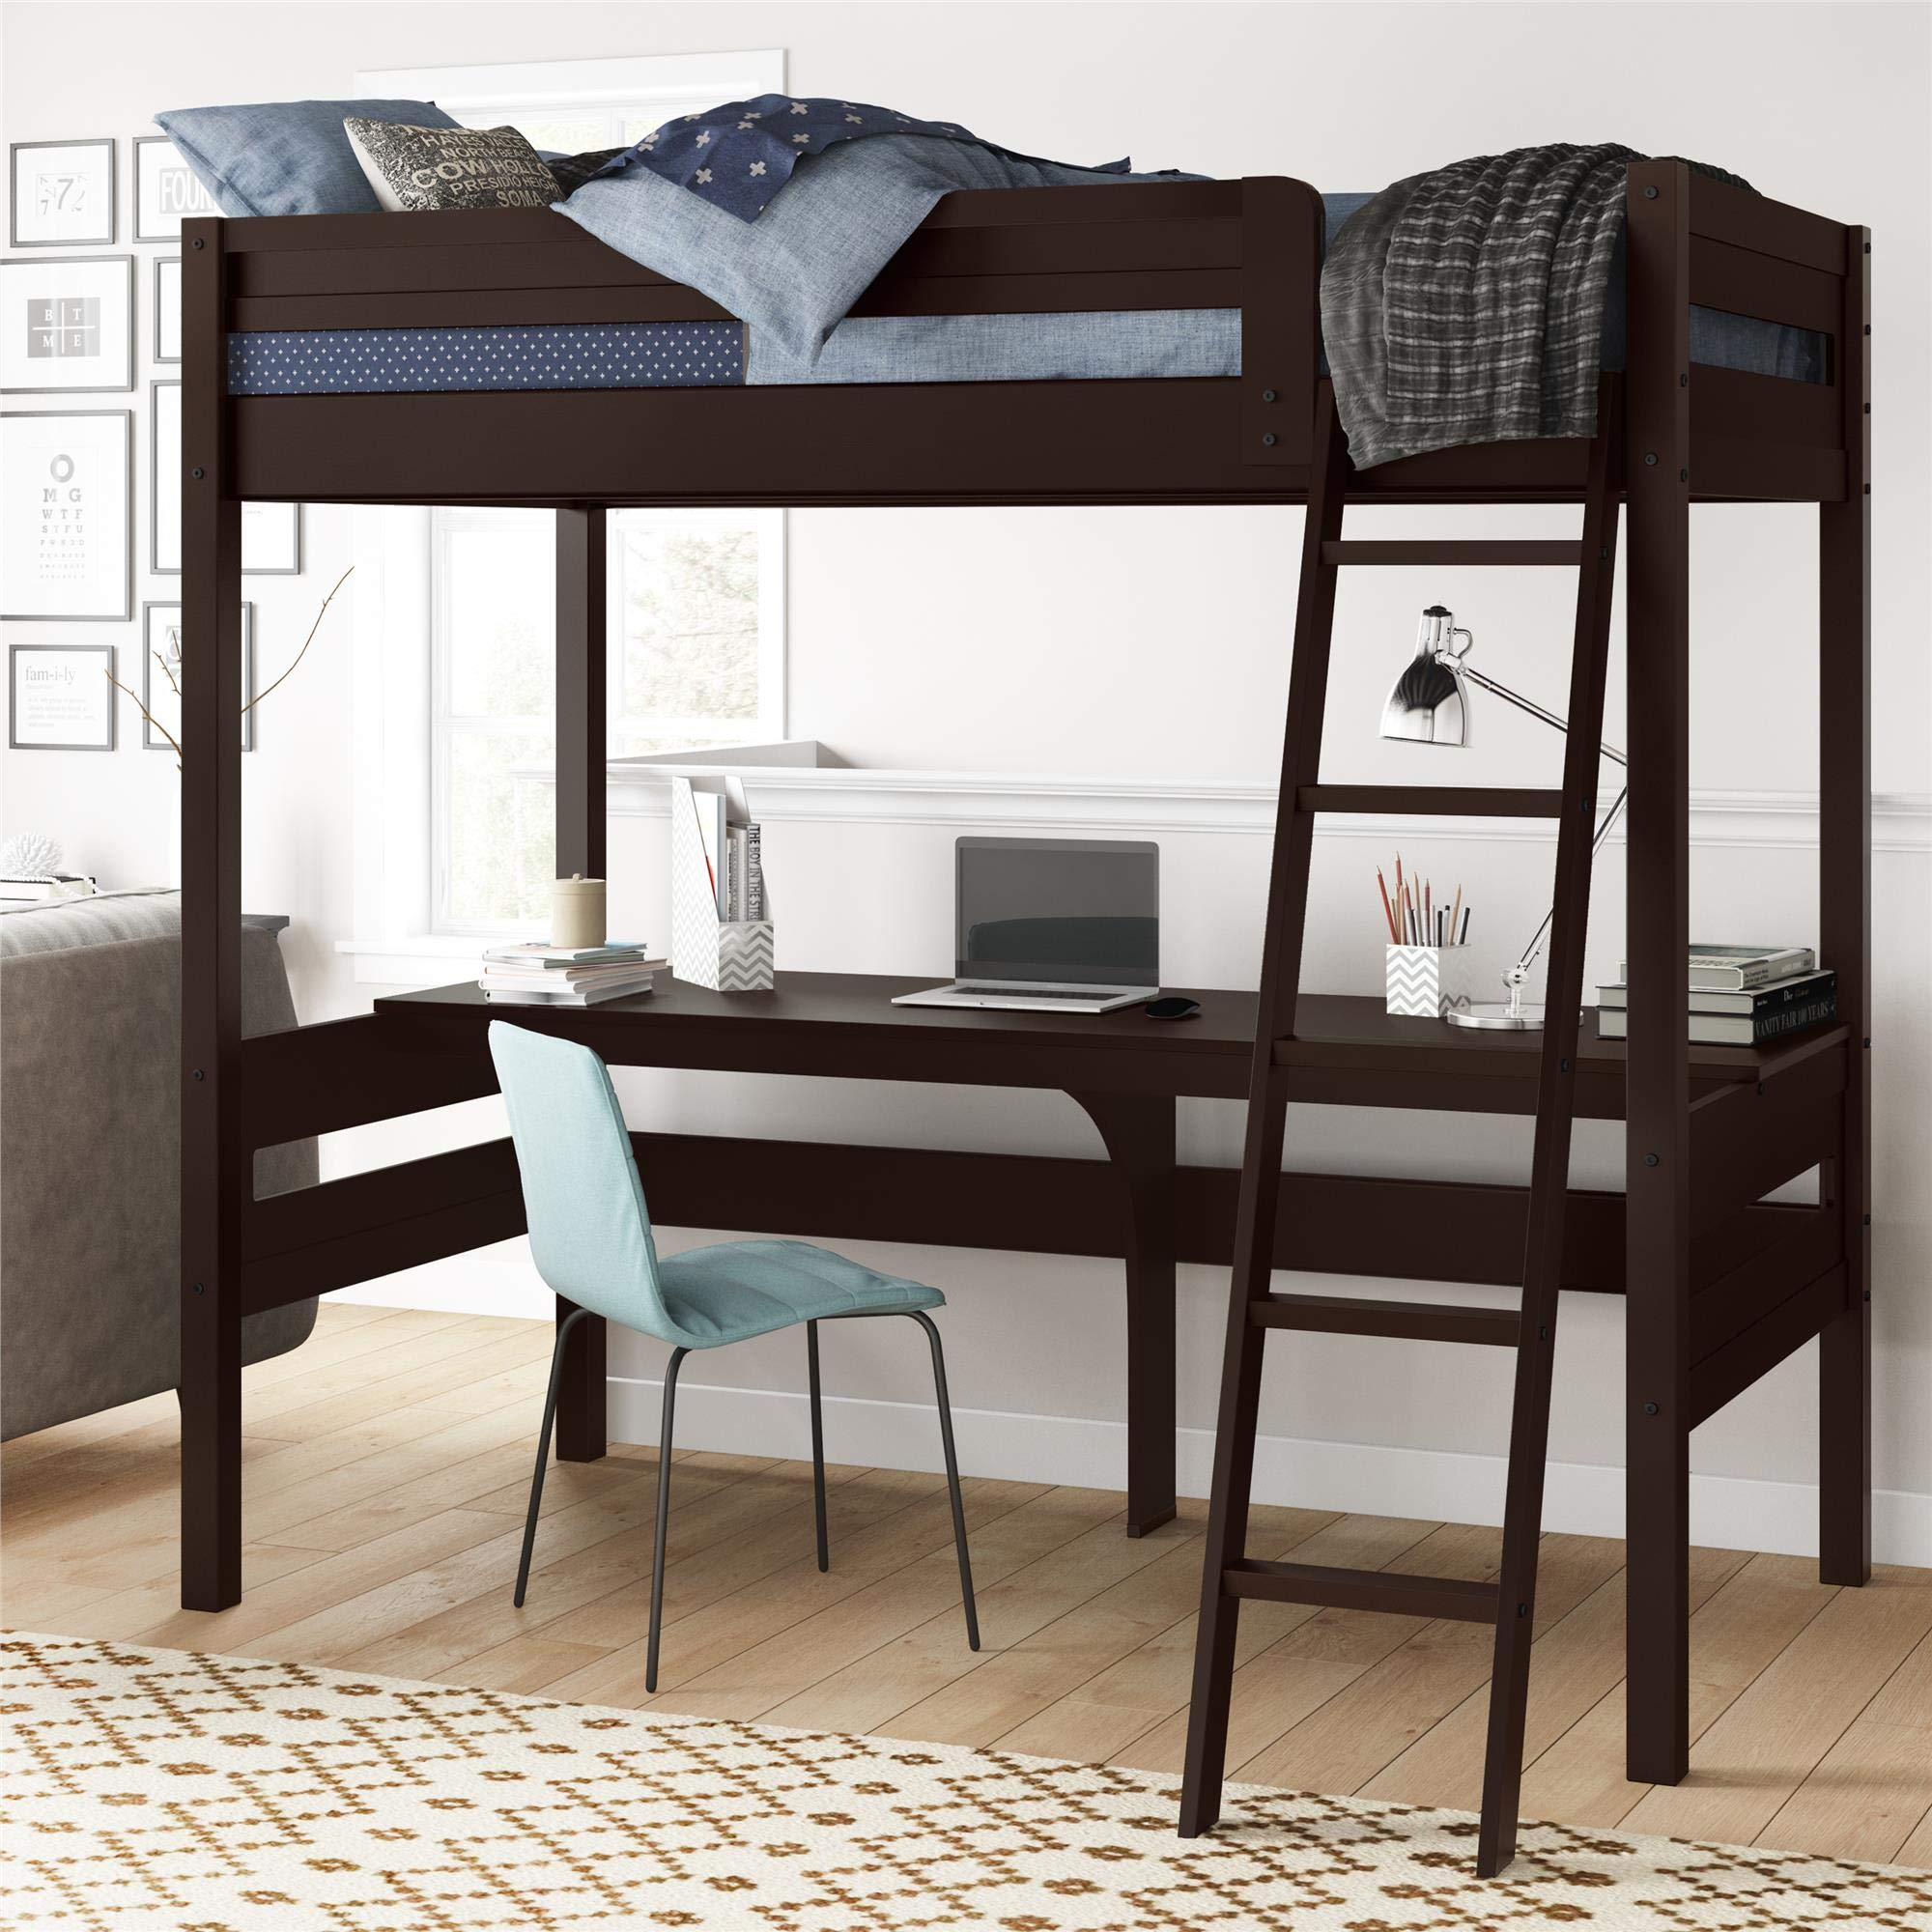 Dorel Living Harlan Wood Loft bed with Ladder and Guard Rail, Twin, Espresso by Dorel Living